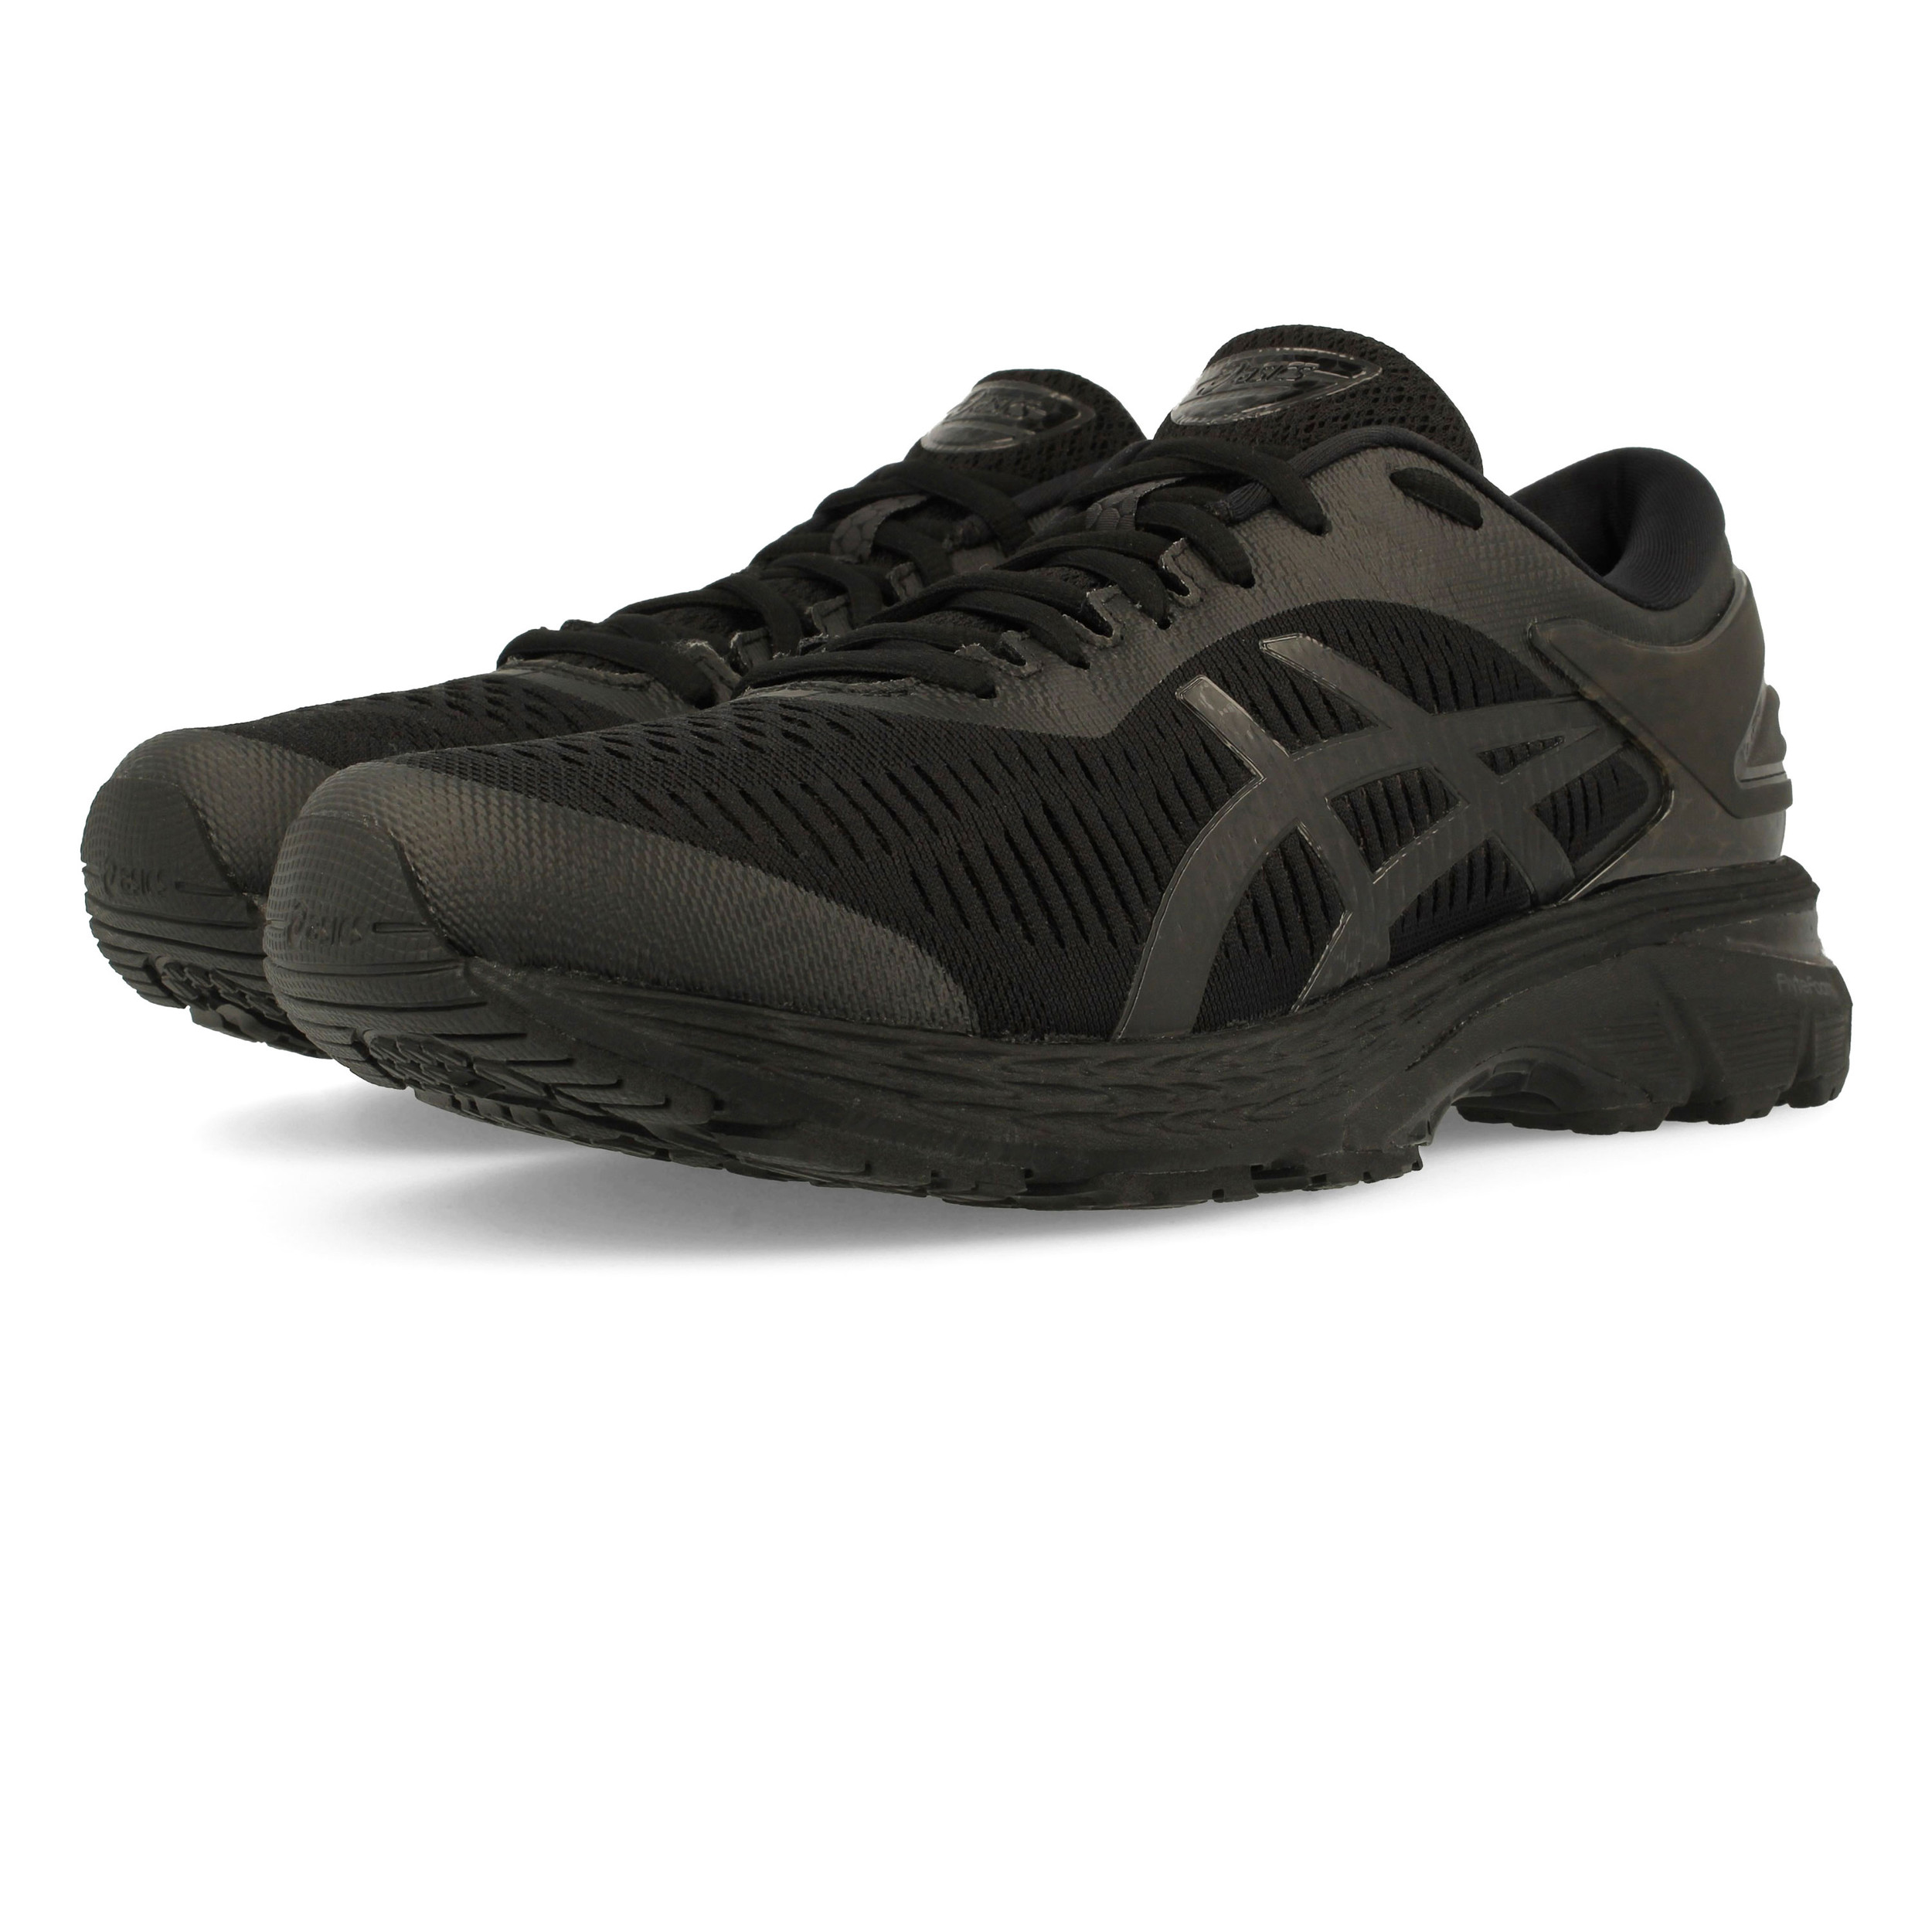 bcac5fa0cdaf9 Asics Mens Gel-Kayano 25 Running Shoes Trainers Sneakers Black Sports  Breathable